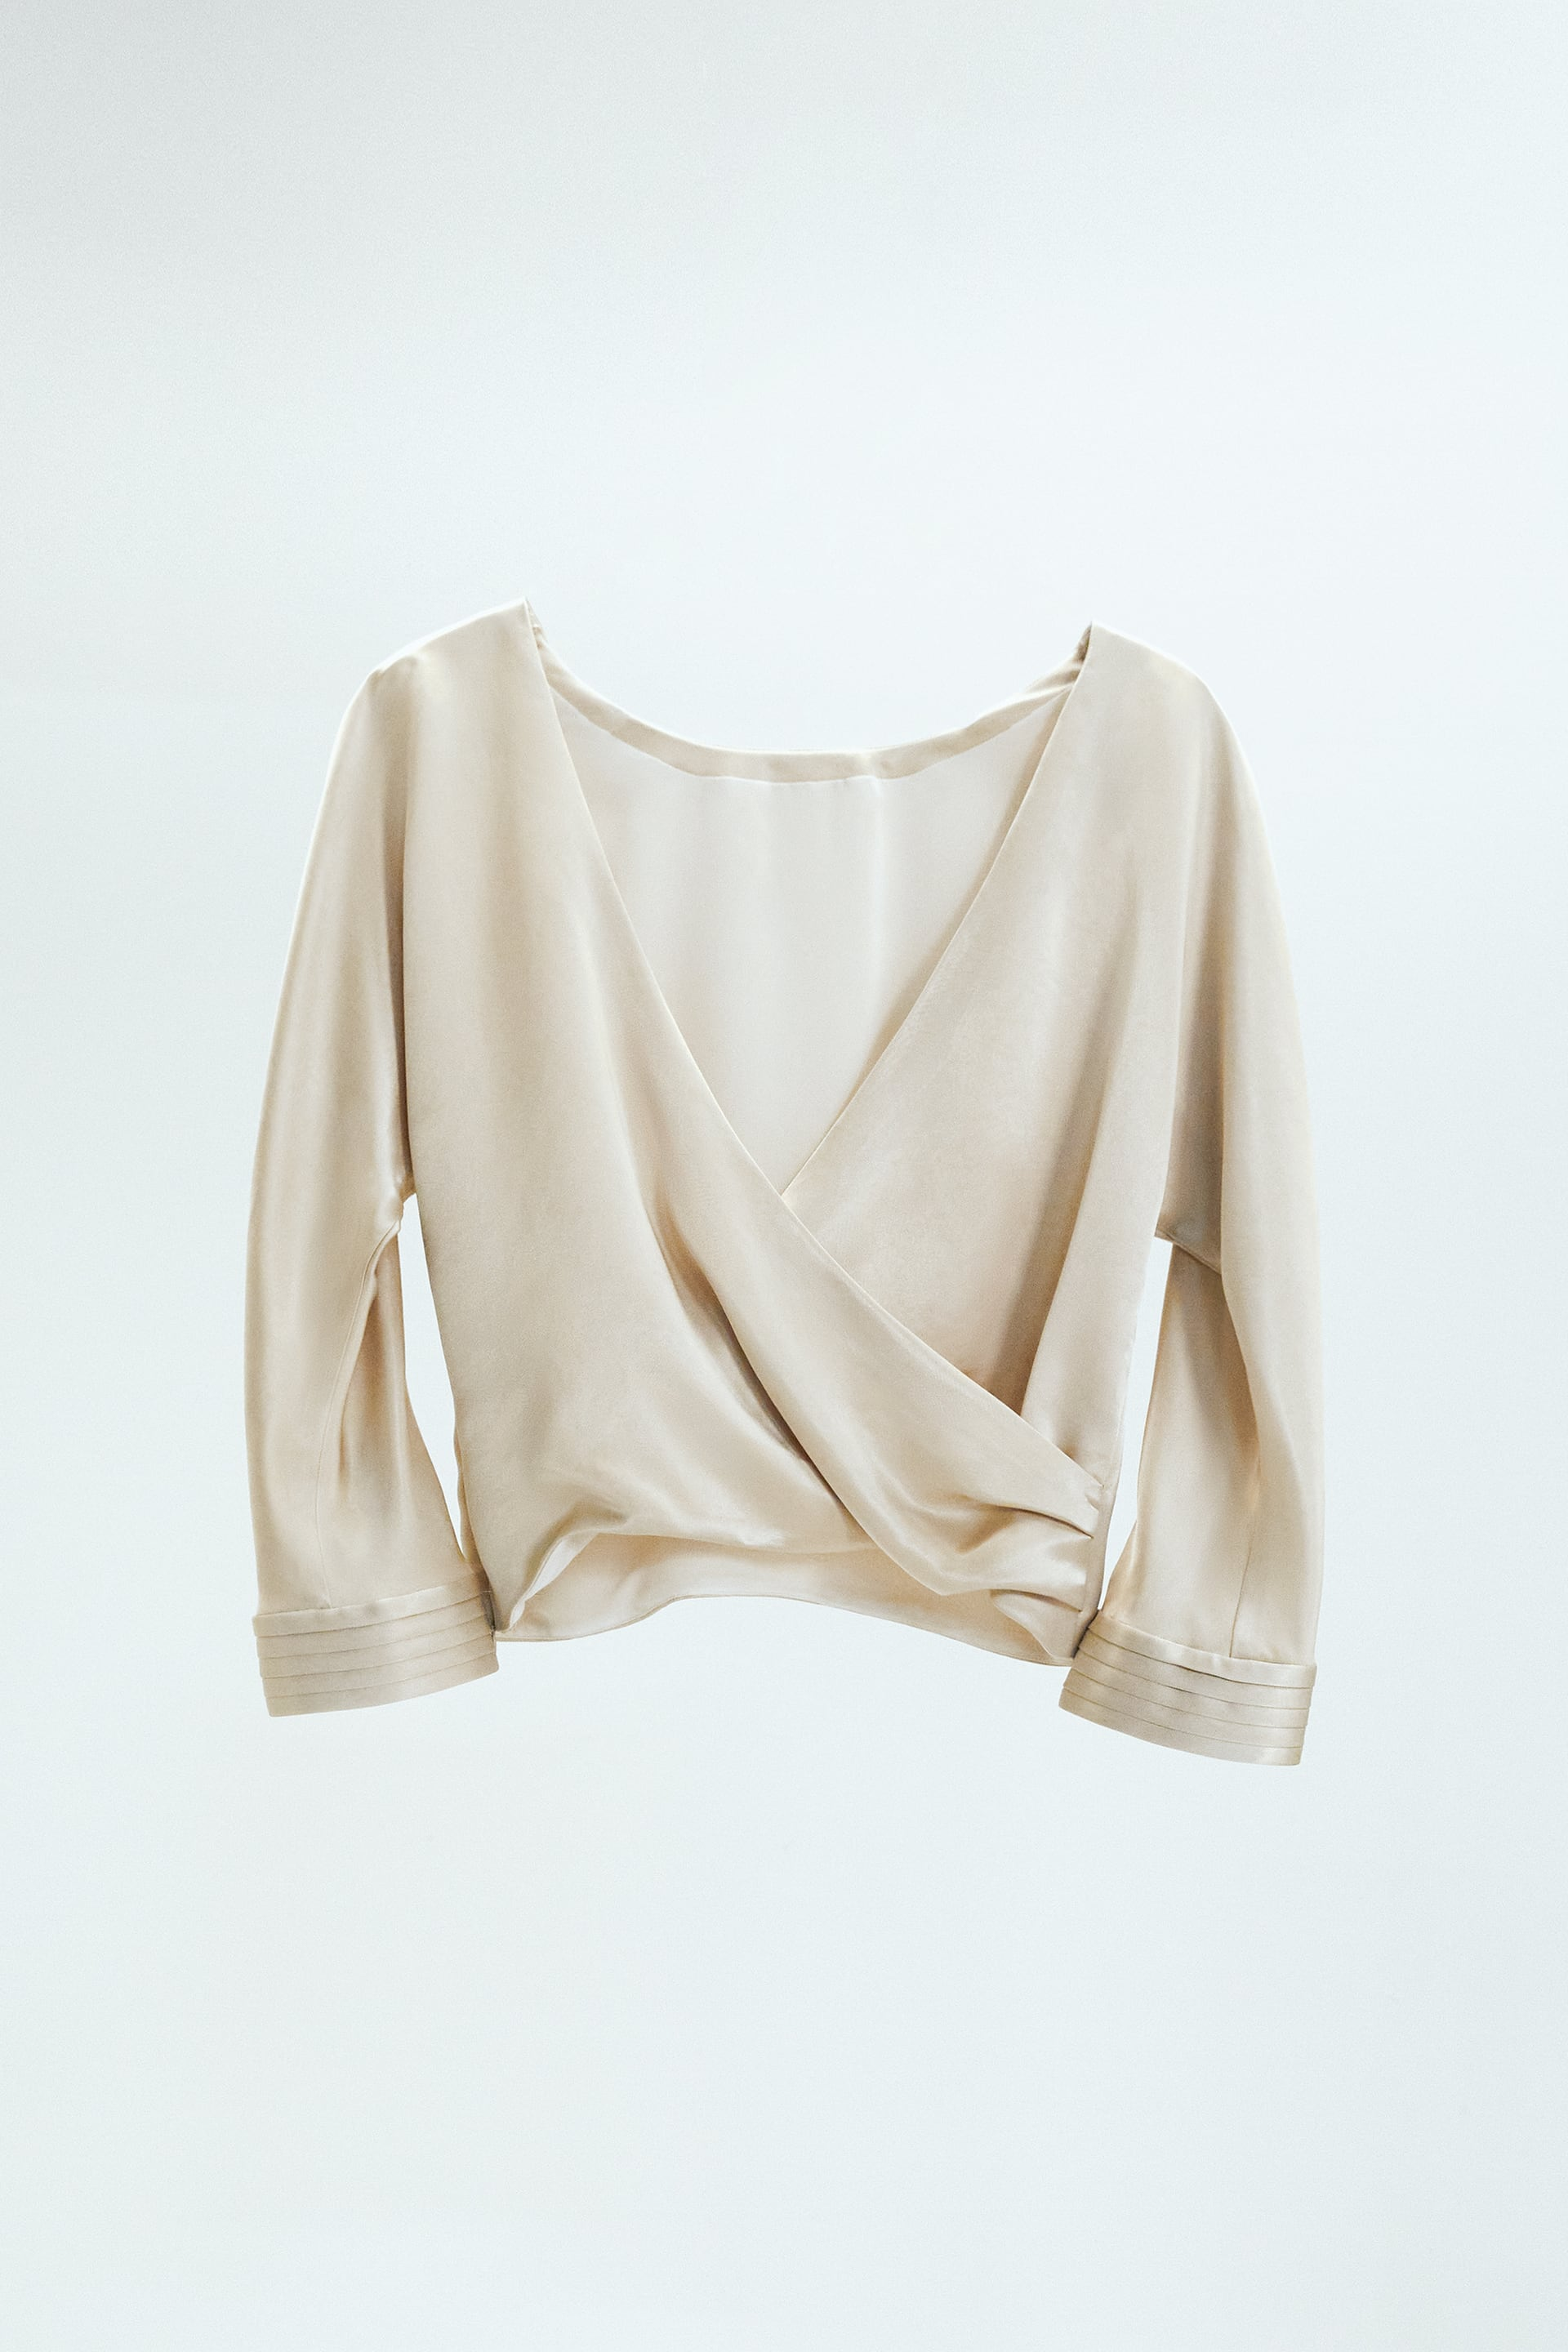 Limited Edition Satin Top